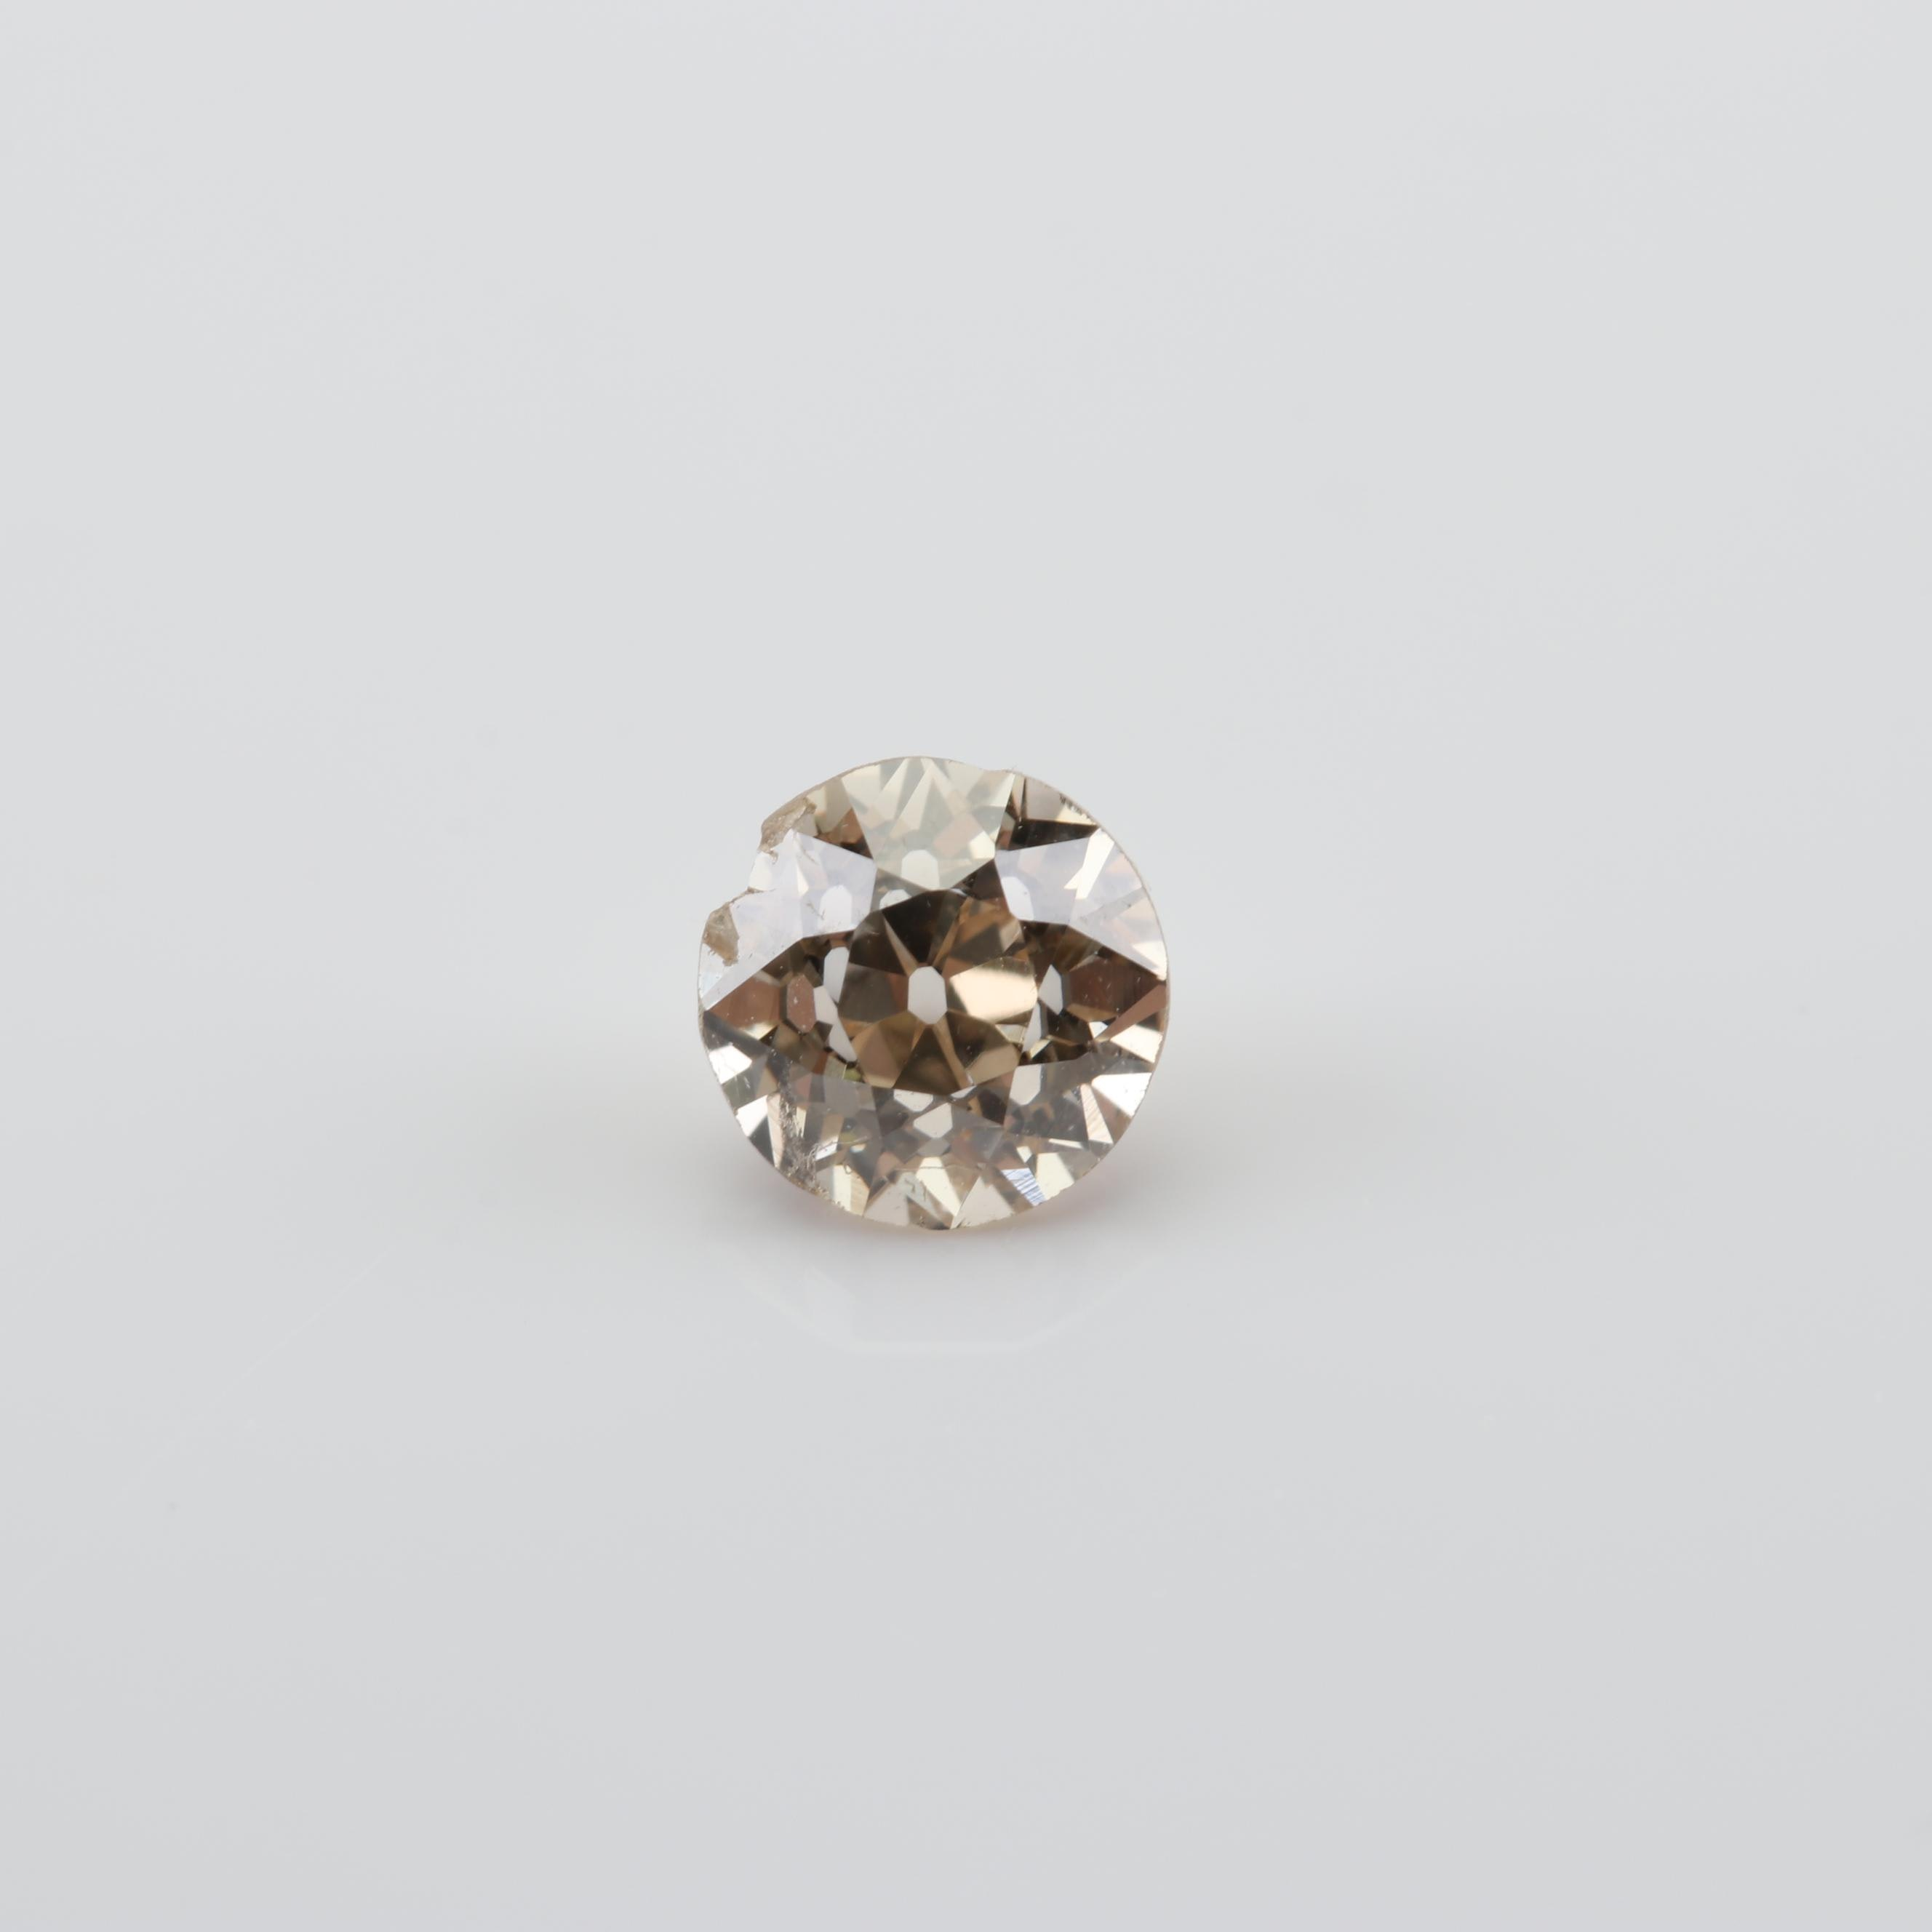 Loose 0.38 CT Diamond